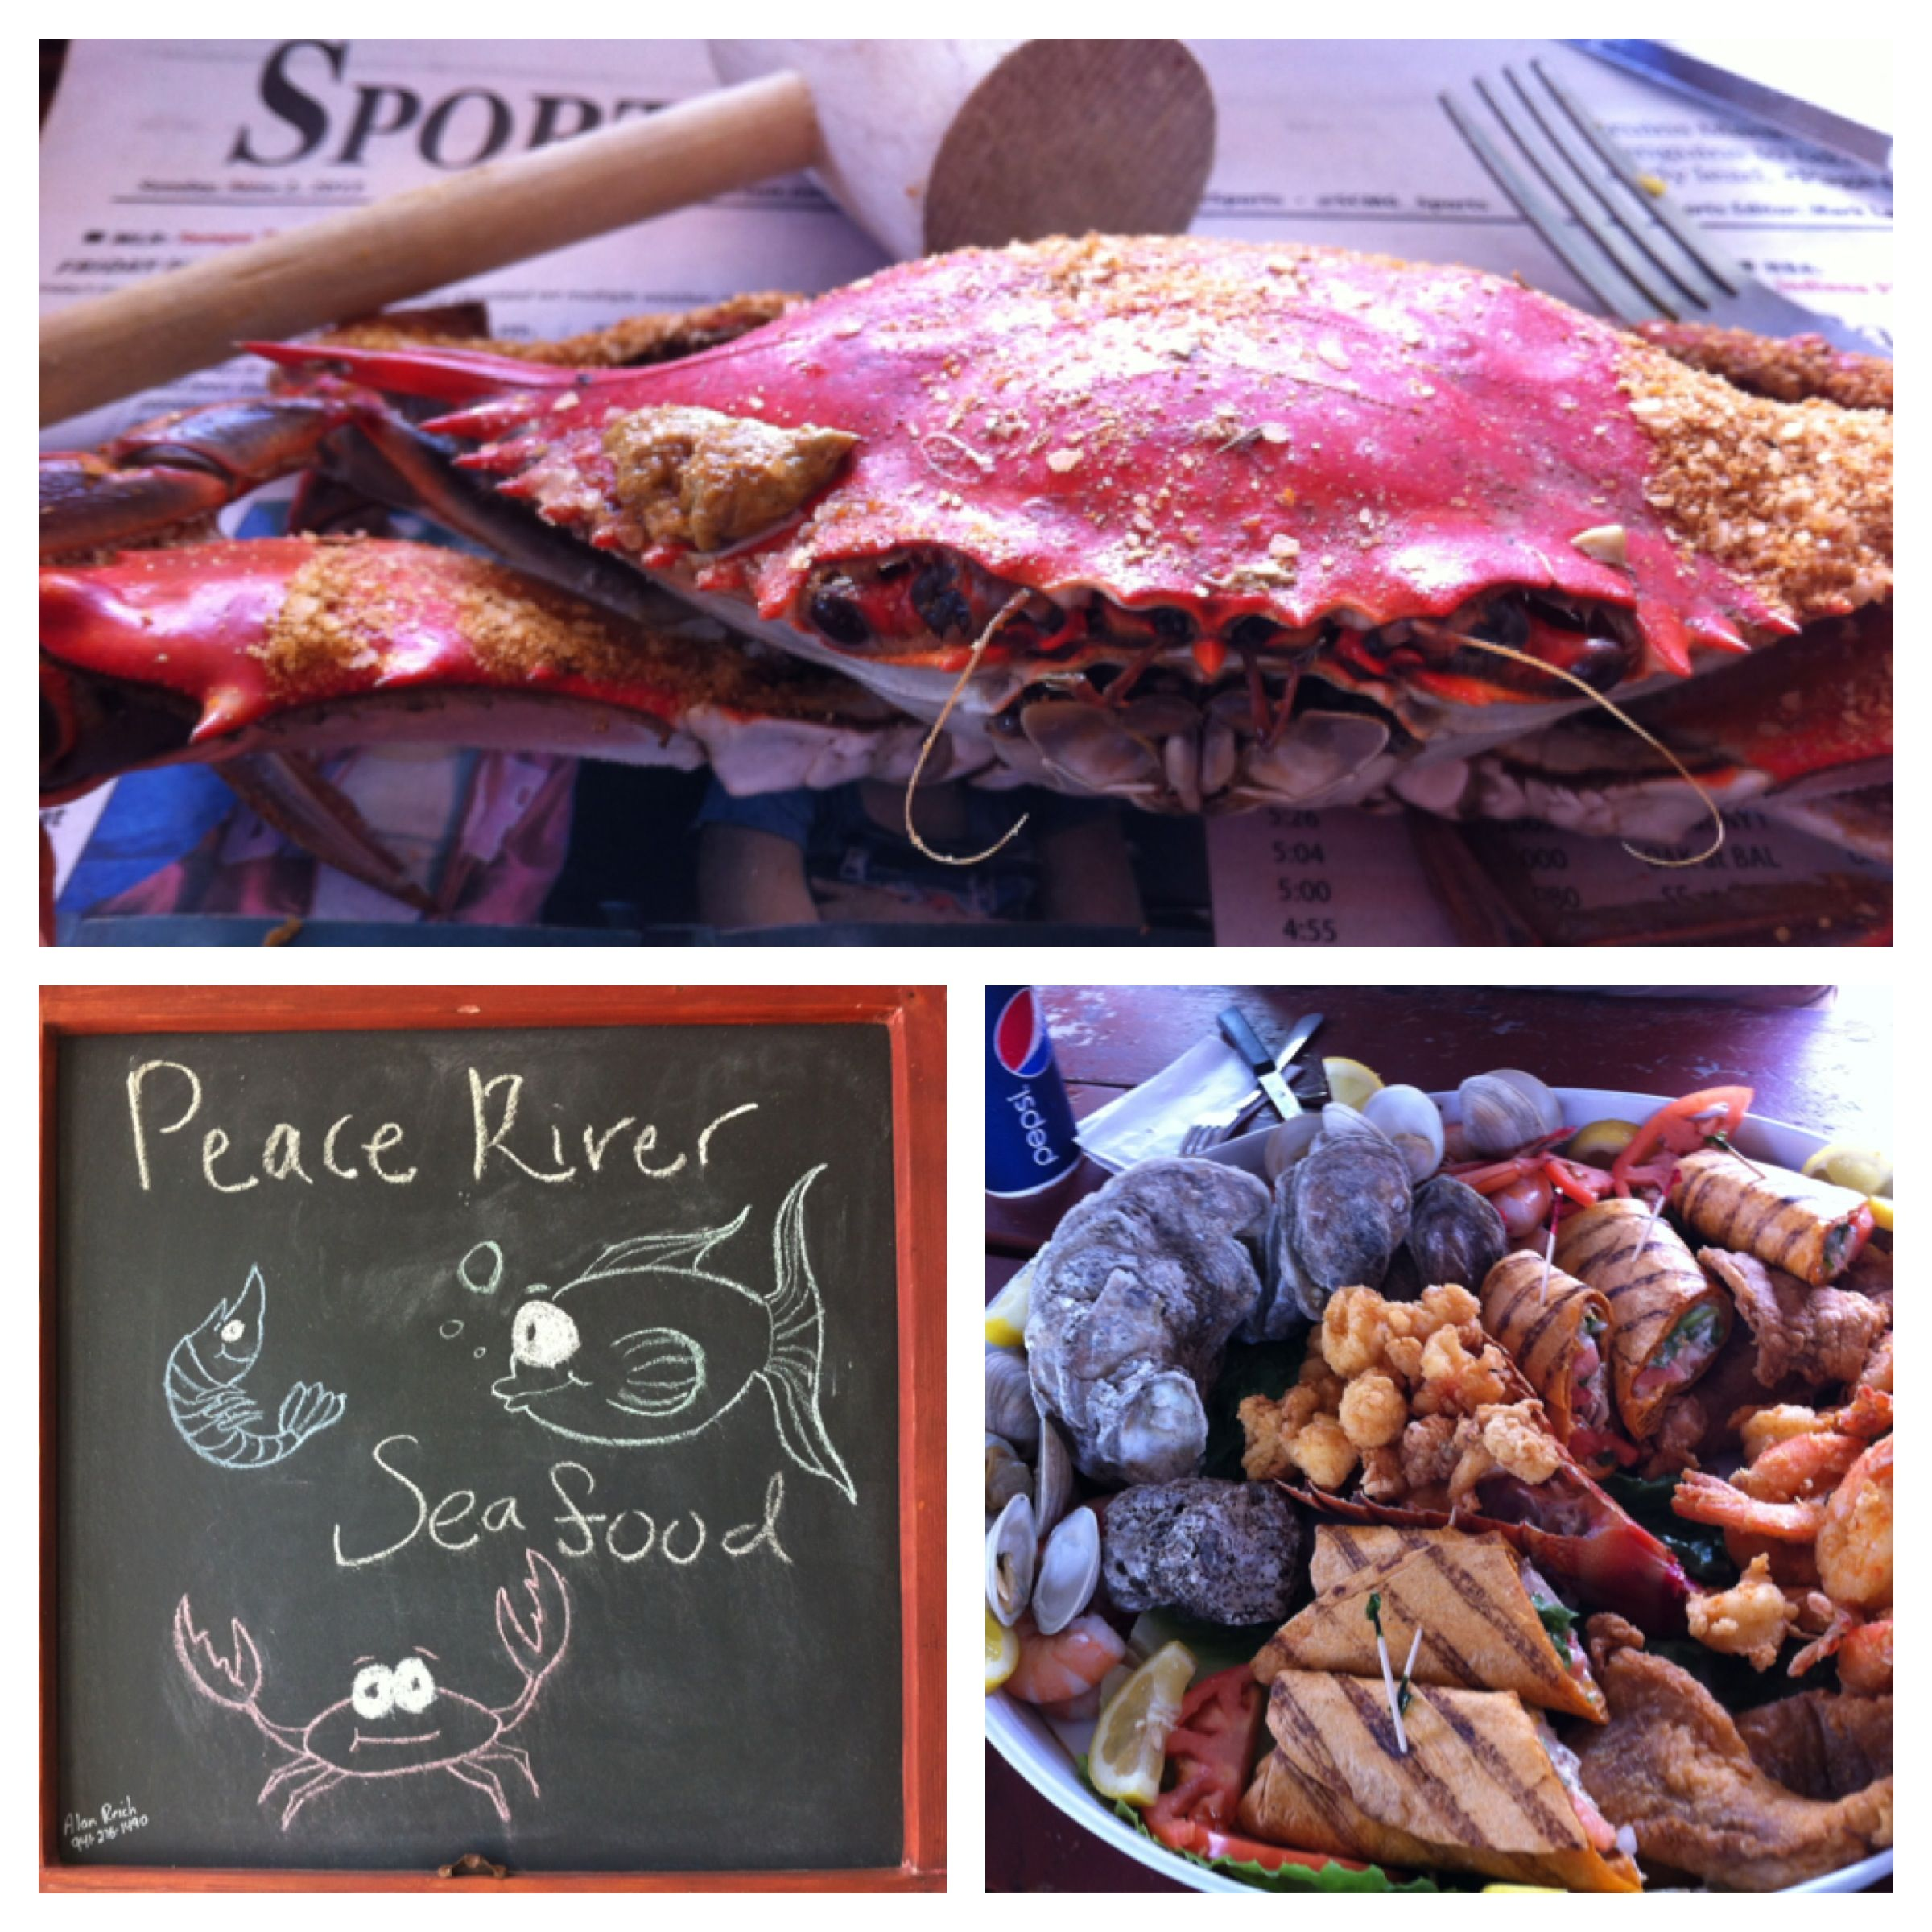 A delicious seafood feast at Peace River Seafood in Punta Gorda and yes, I shares.